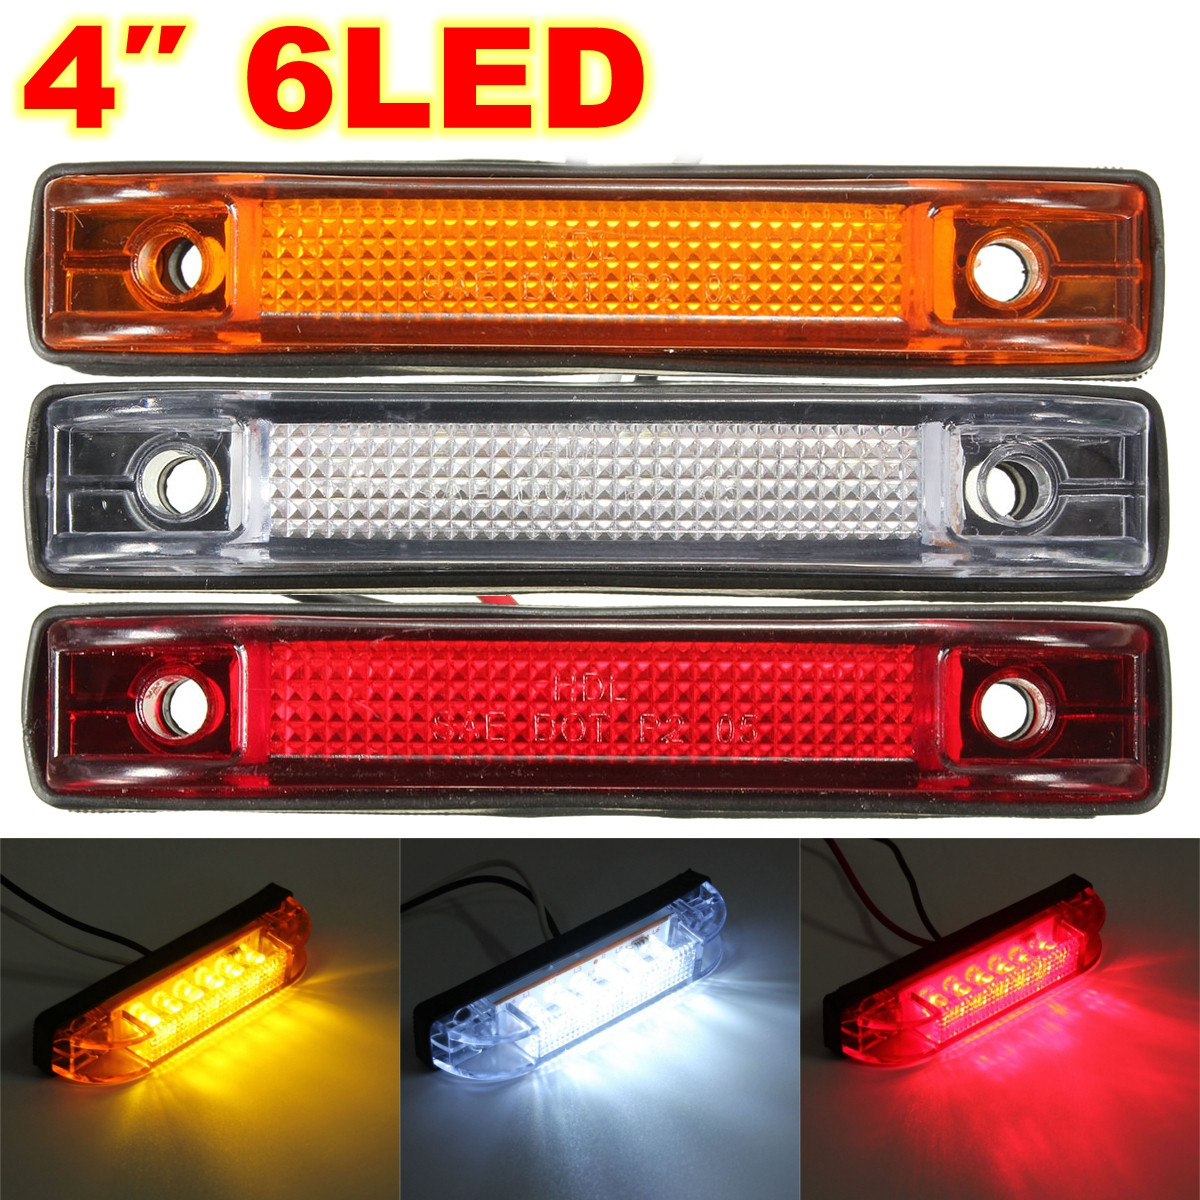 6 LED Clearance Side Marker Light Indicator Lamp Truck Trailer Lorry Van 12V 24V